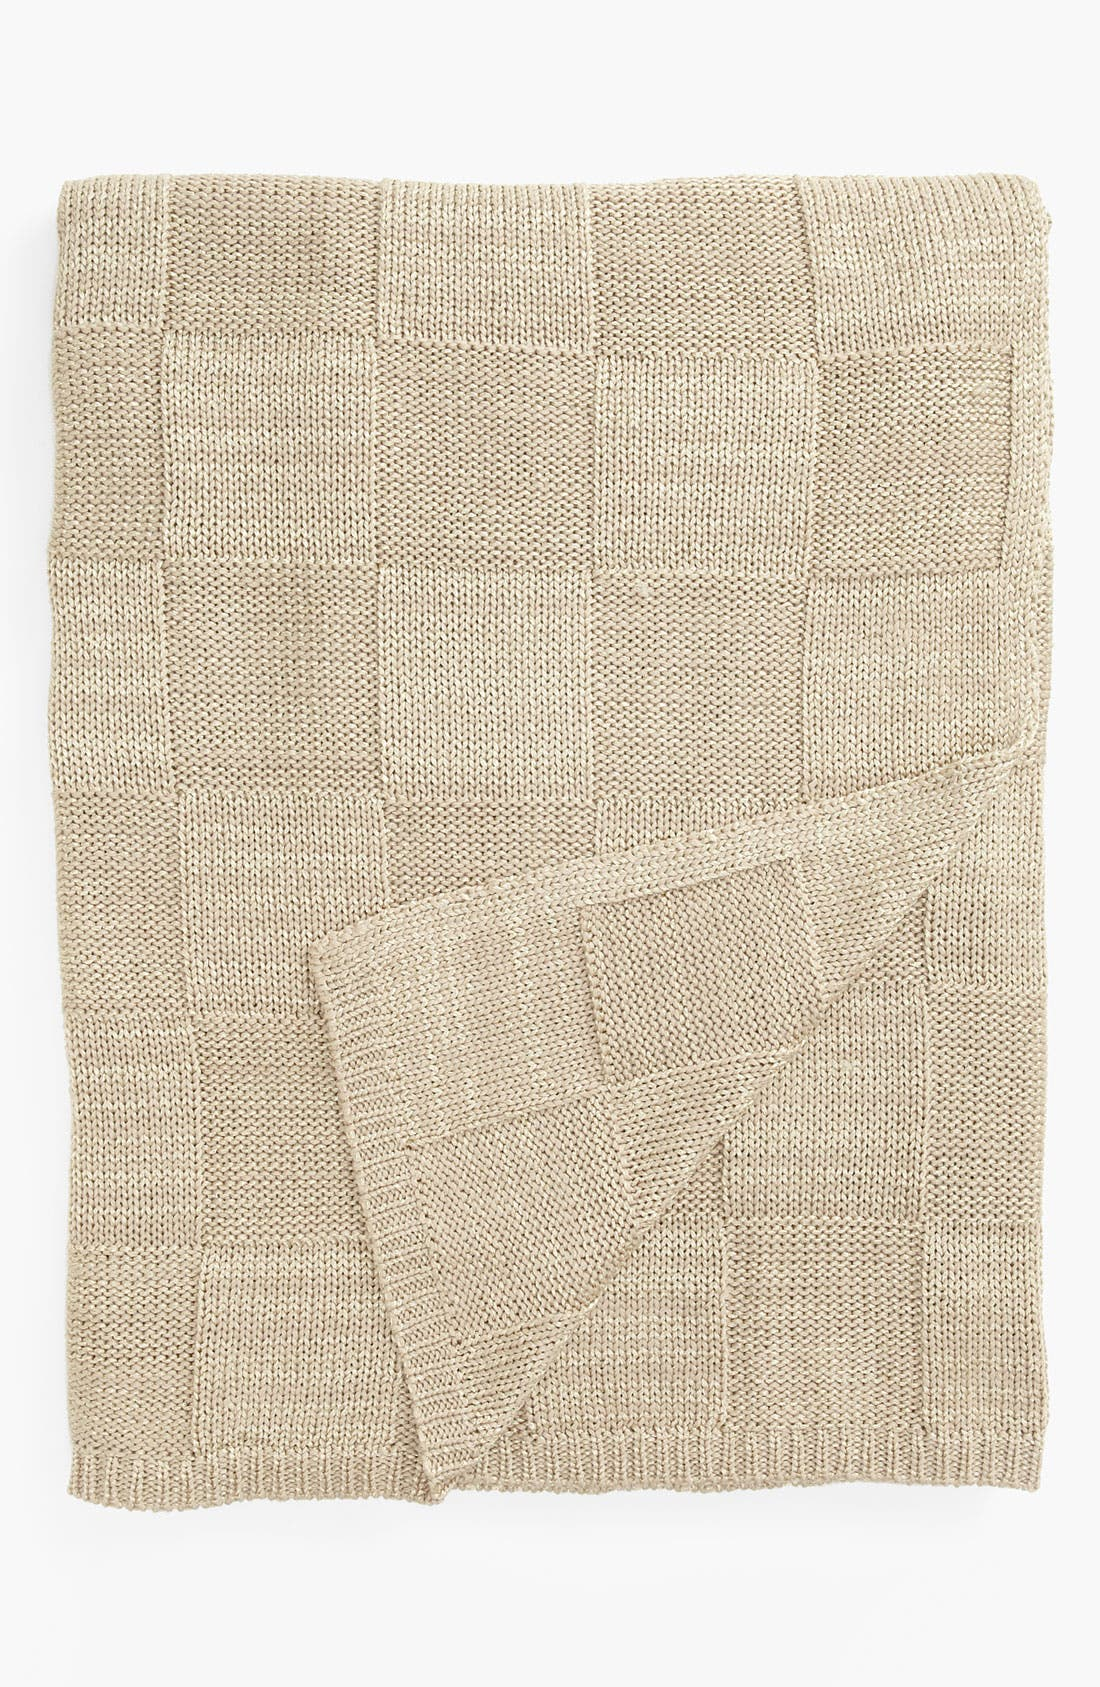 Alternate Image 1 Selected - Nordstrom at Home 'Twilight' Throw